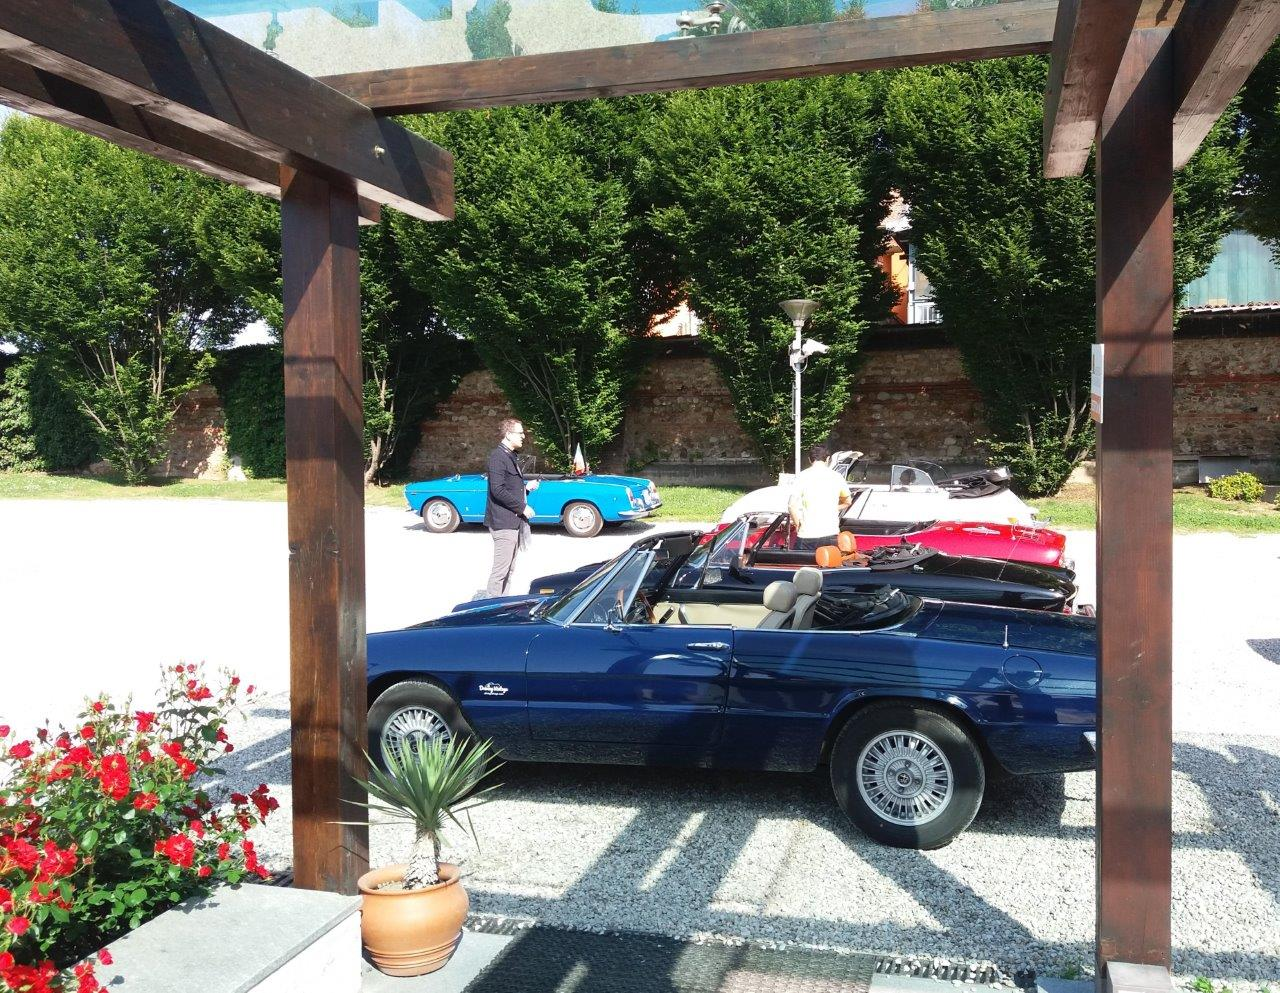 6-Driving-Vintage--incentives_team-building_events_corporate_evento-aziendale_tour_Langhe_gruppo_Torino_auto-vintage_auto-depoca.jpg